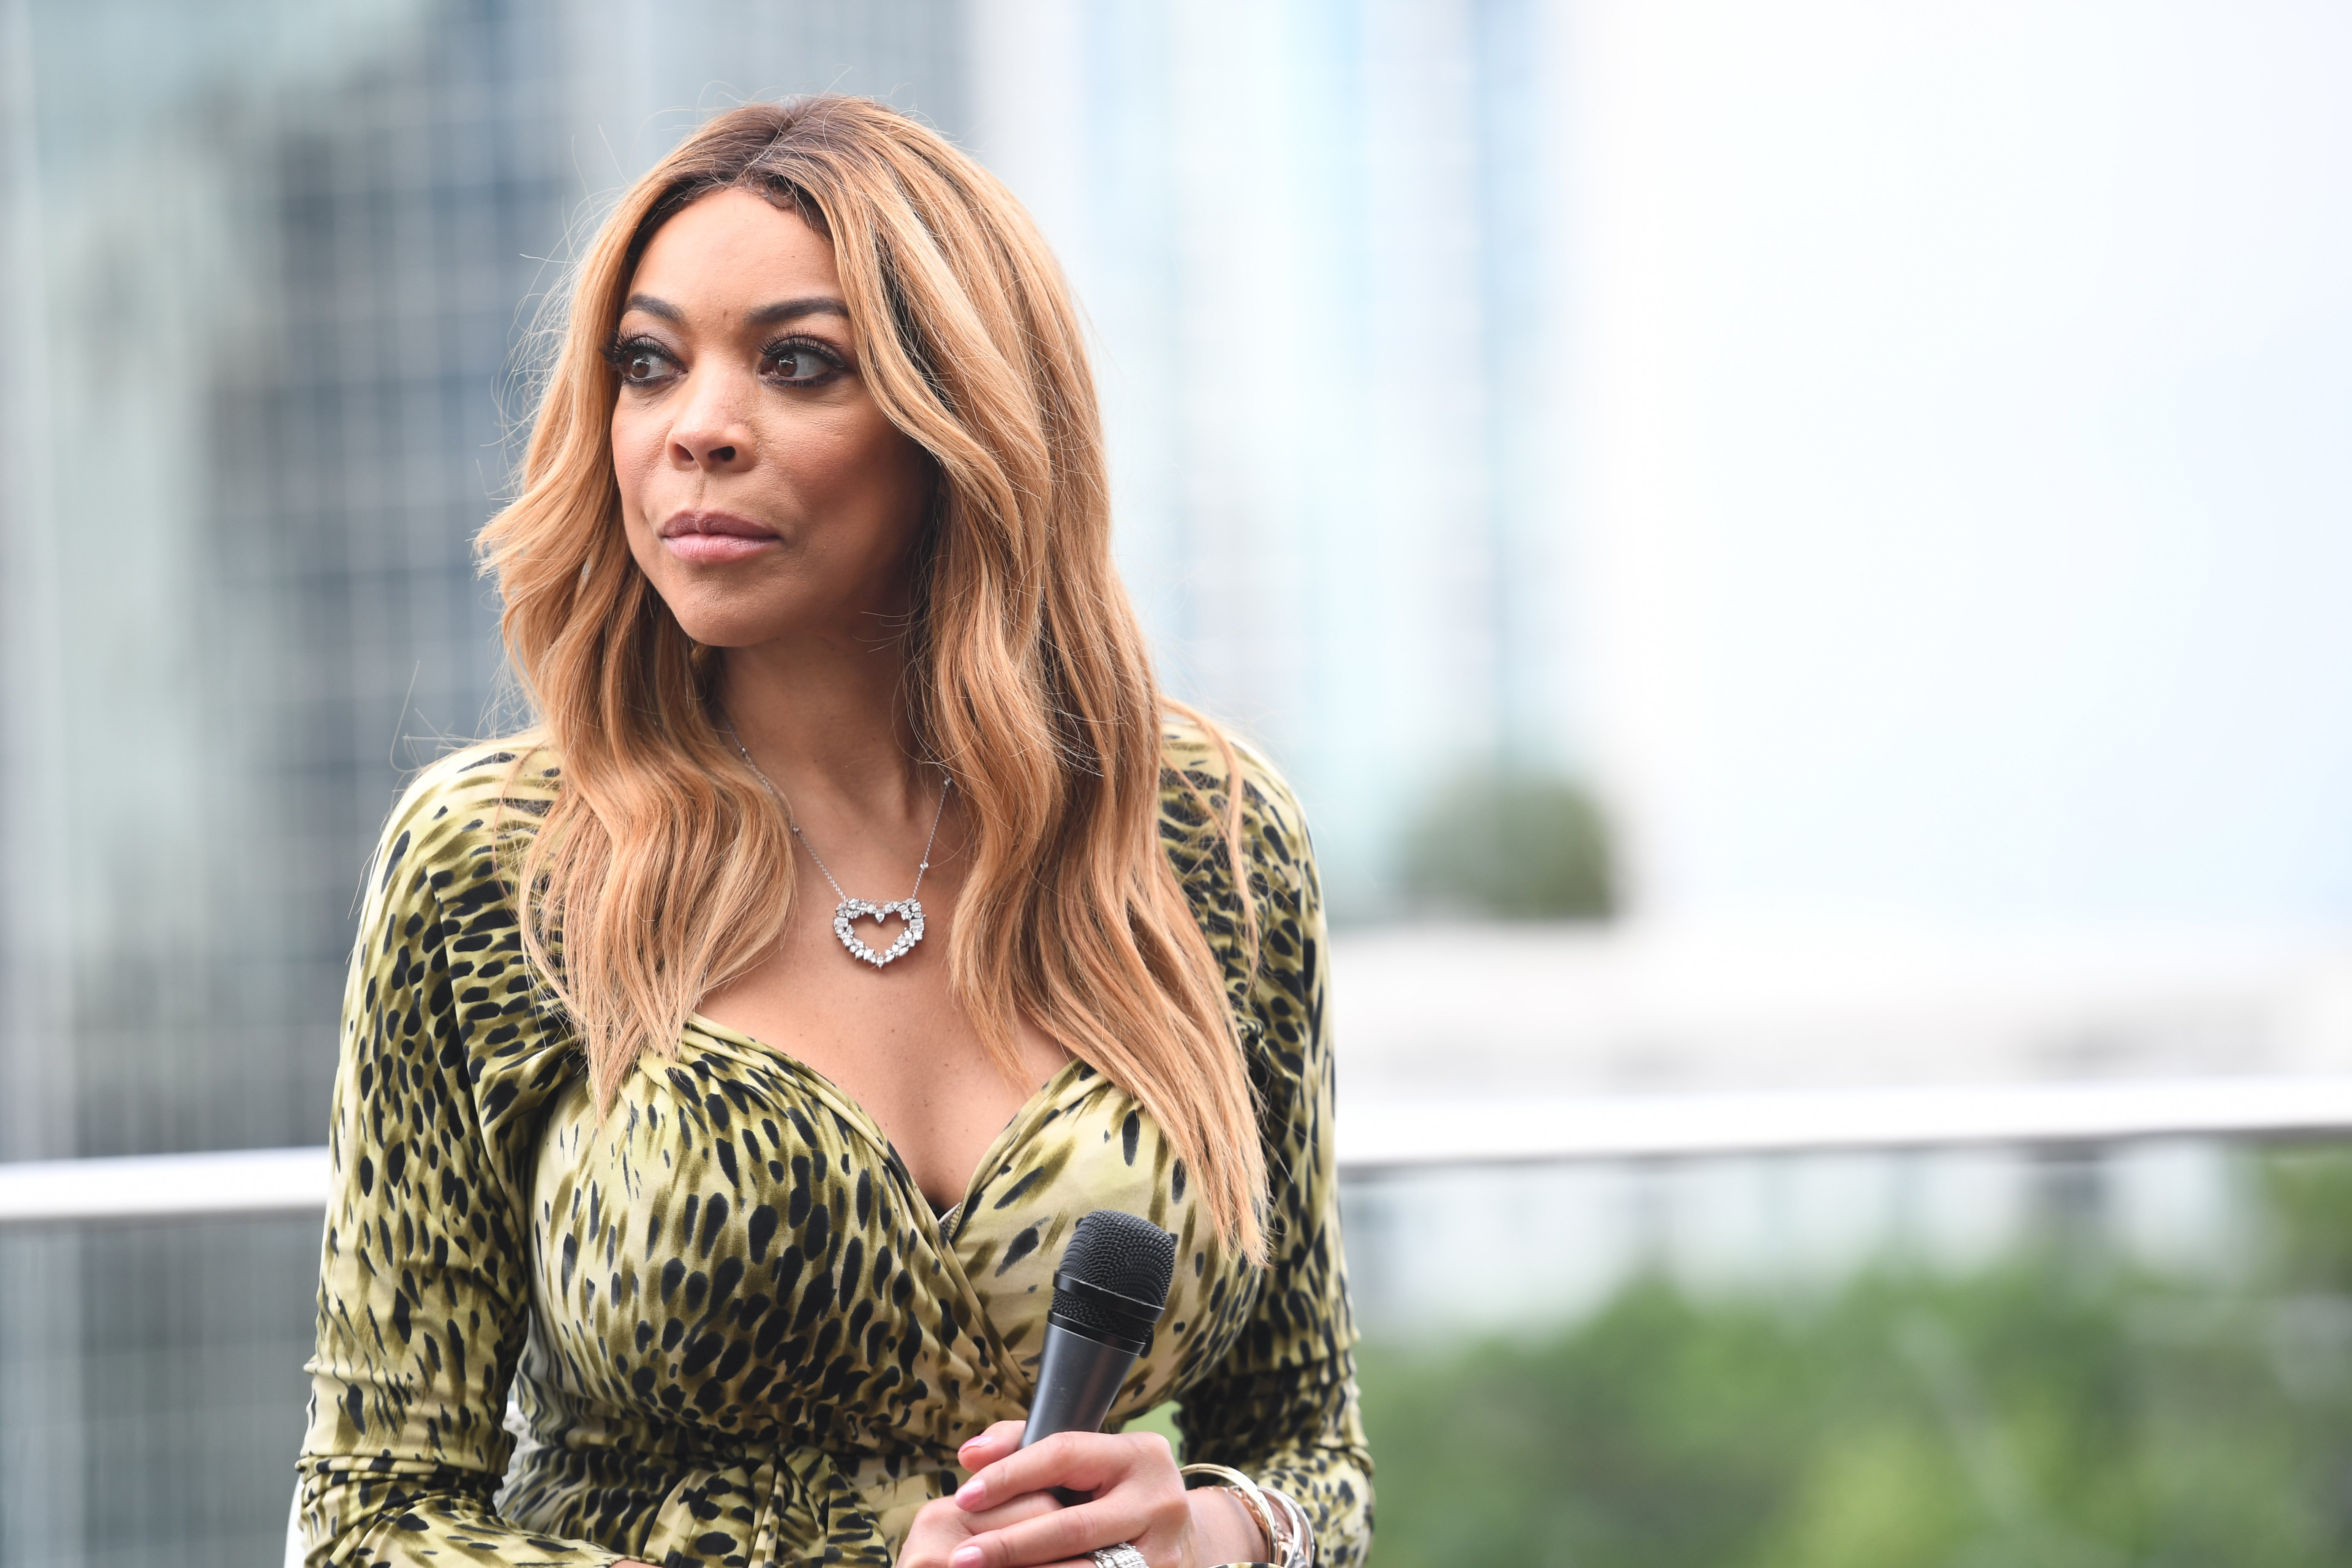 Wendy Williams attends Wendy Digital Event at Atlanta Tech Village Rooftop on August 29, 2017. | Photo: GettyImages